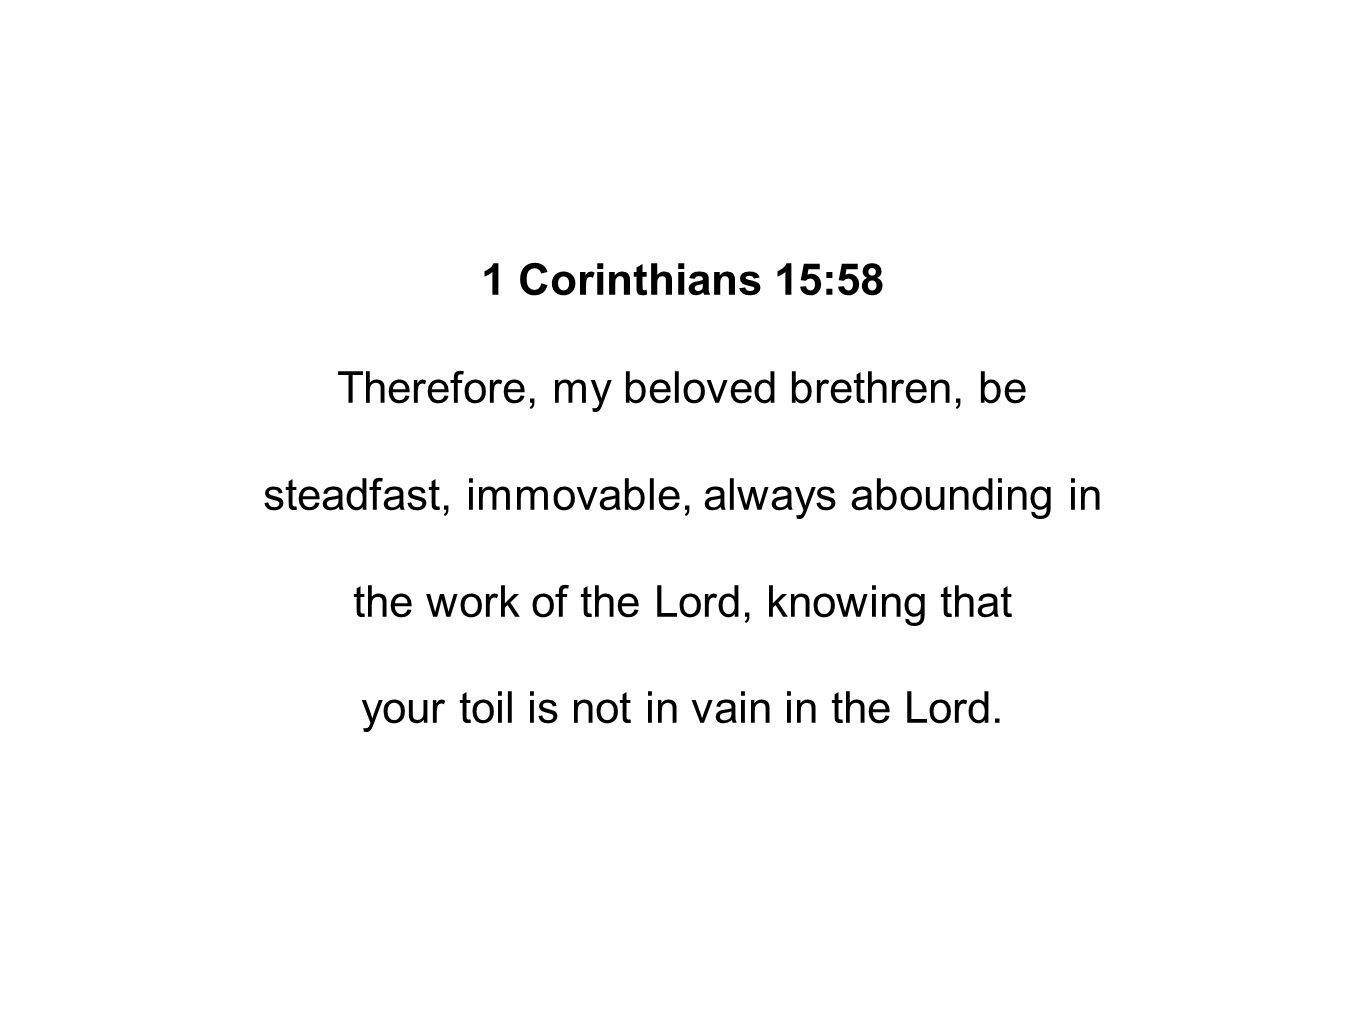 1 Corinthians 15:58 Therefore, my beloved brethren, be steadfast, immovable, always abounding in the work of the Lord, knowing that your toil is not in vain in the Lord.